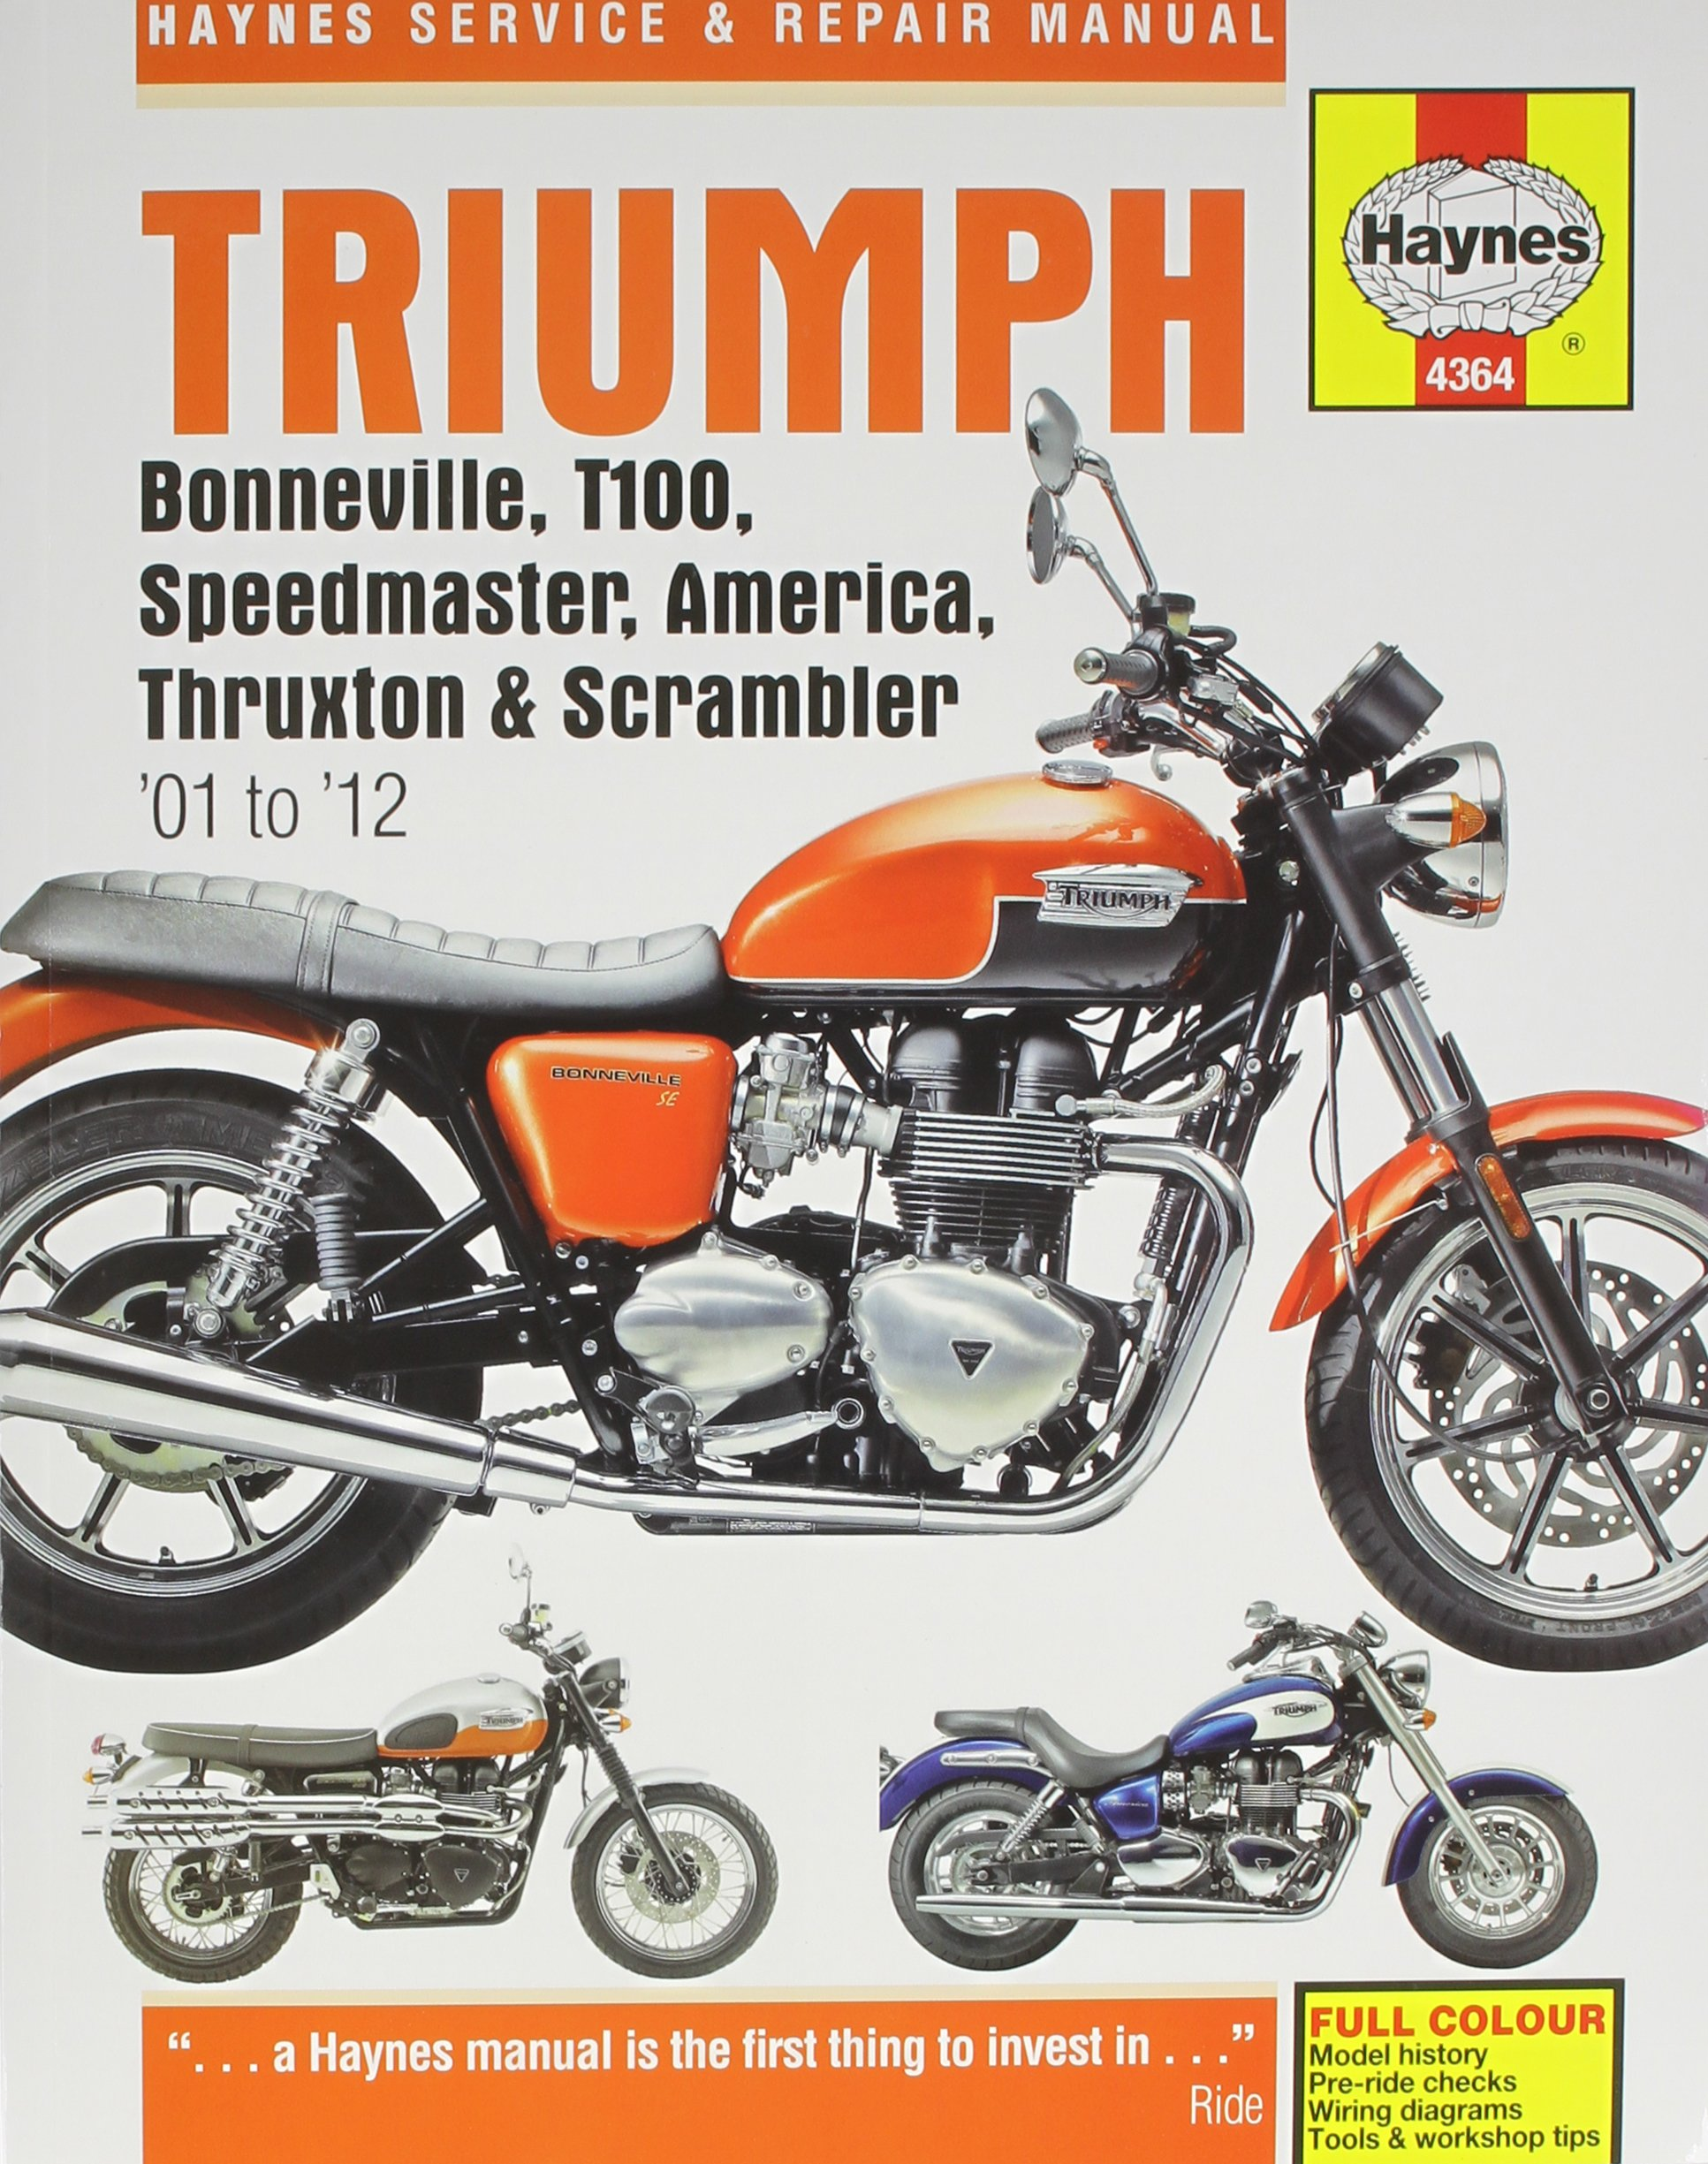 91zM%2Blyfk9L triumph bonneville service and repair manual (haynes service and triumph t140 wiring diagram pdf at readyjetset.co